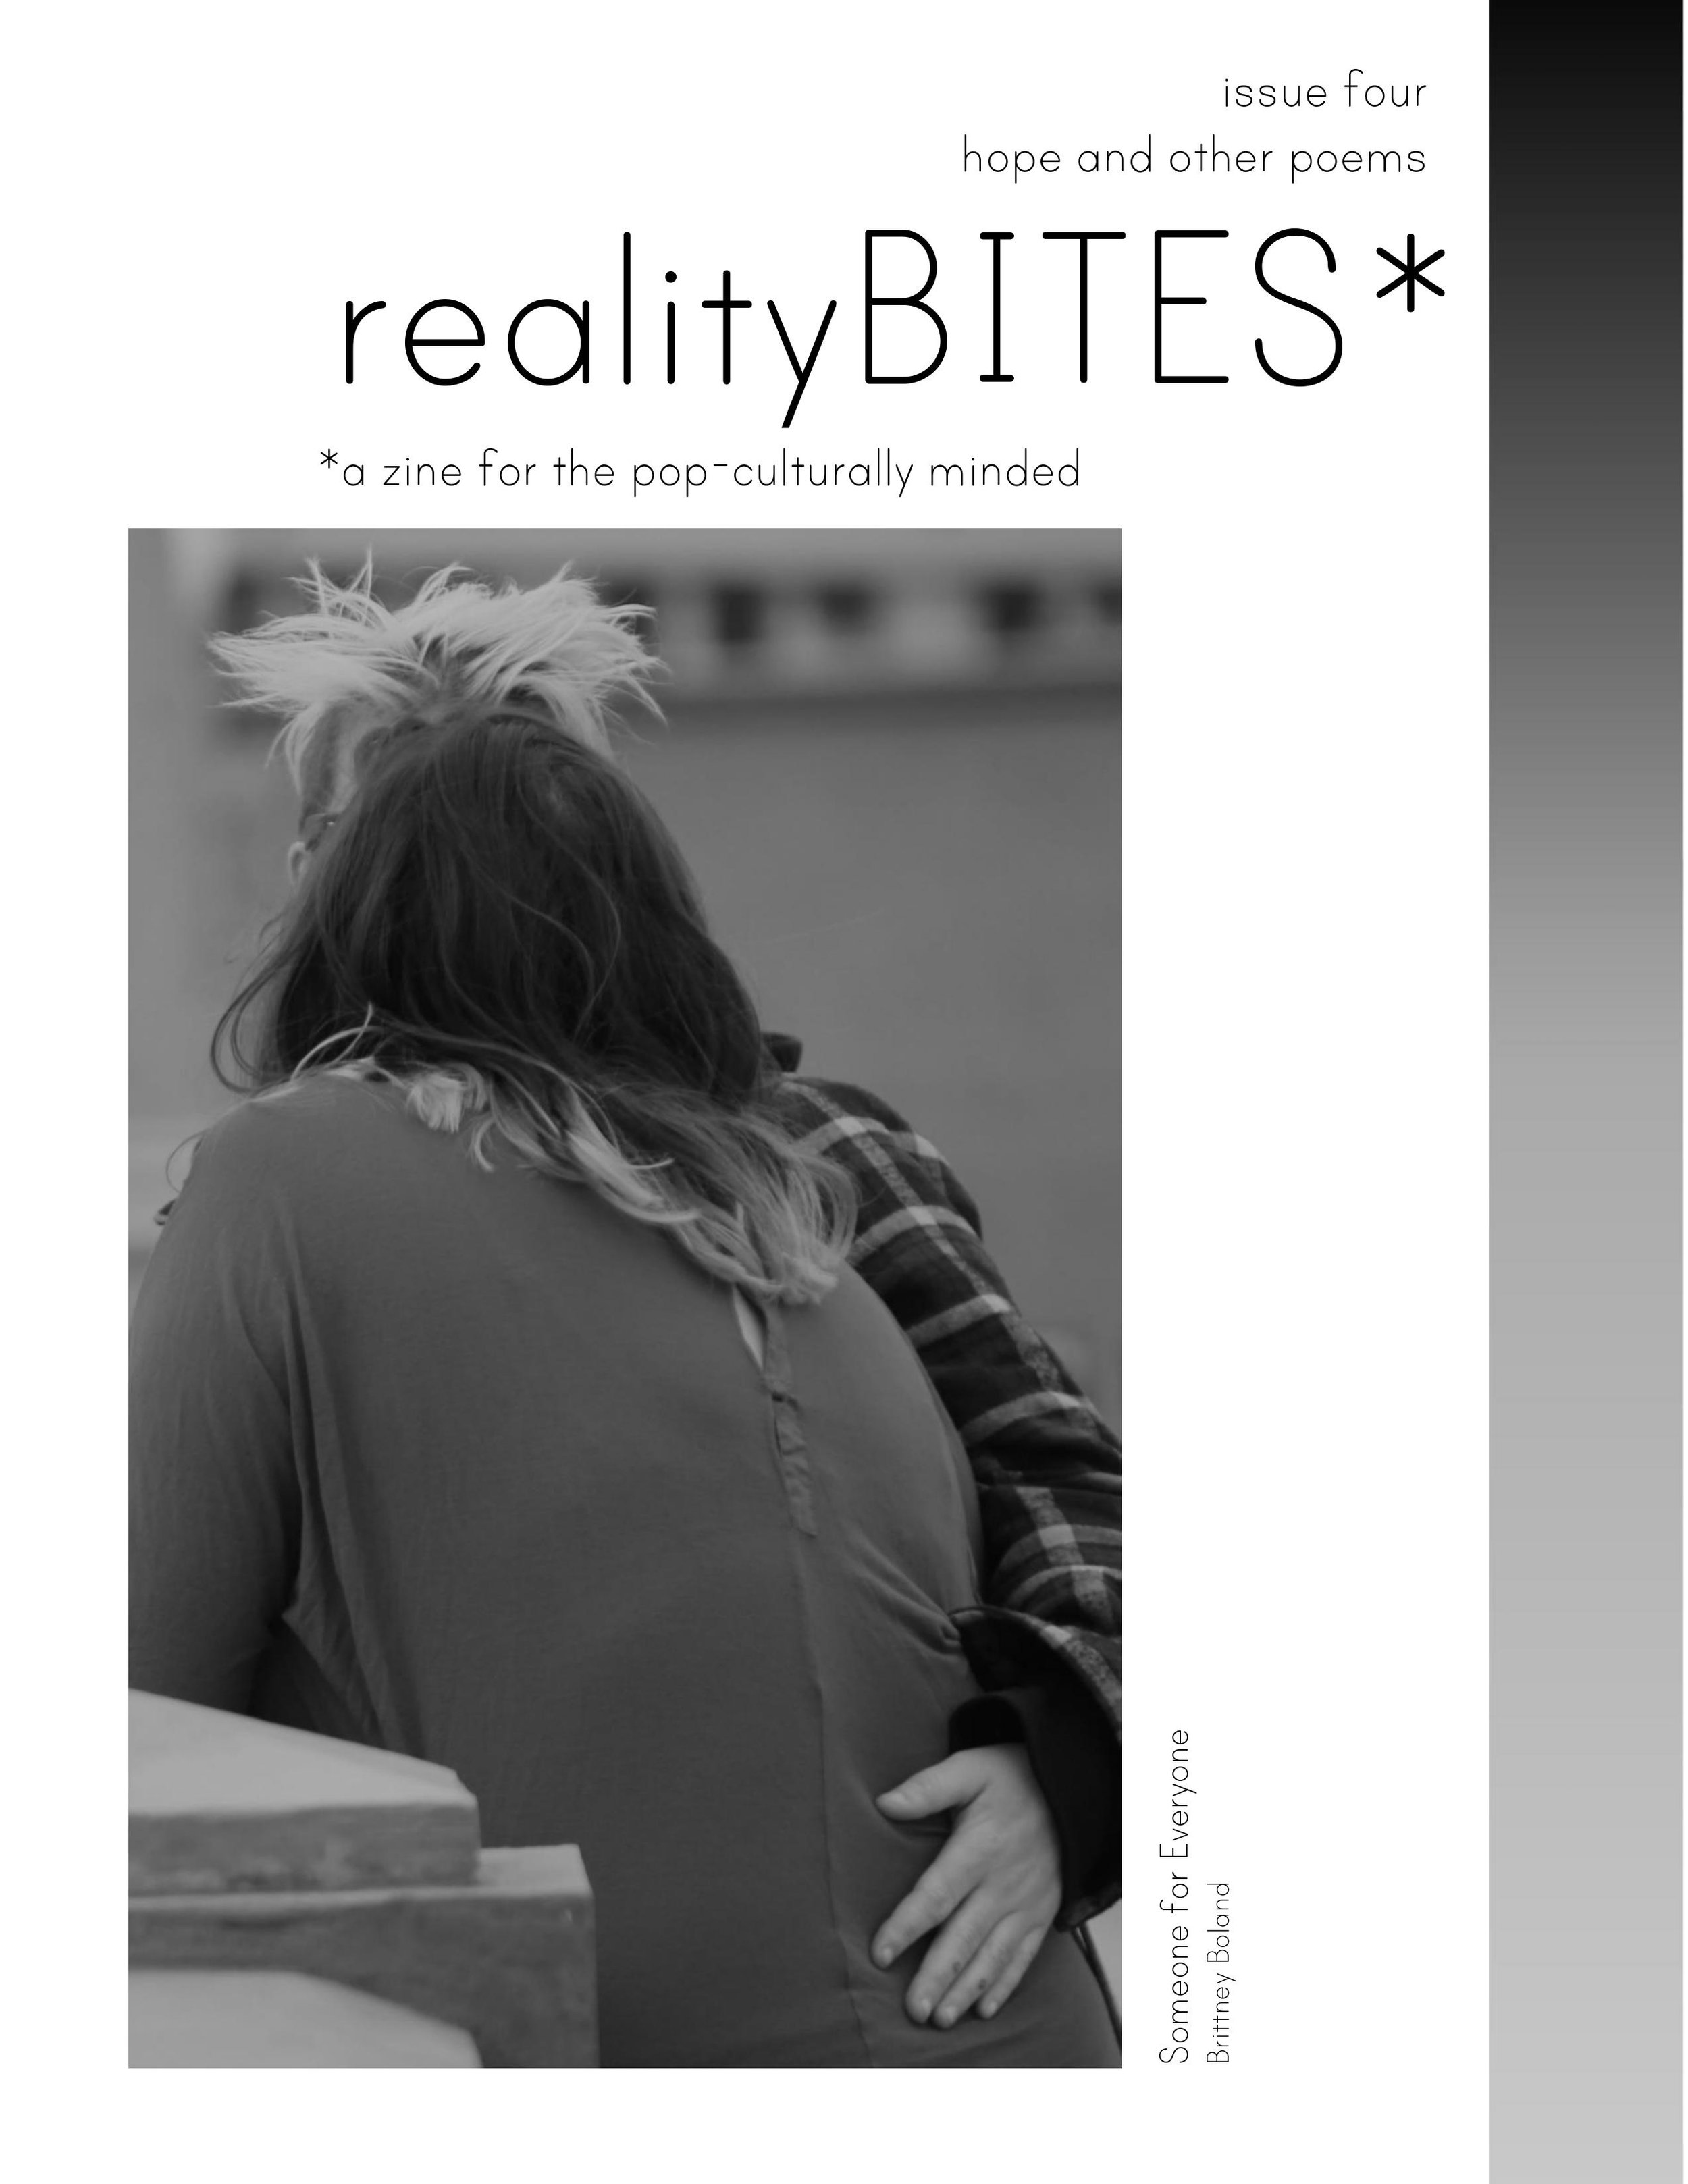 realityBITES | issue 4 - hope and other poems